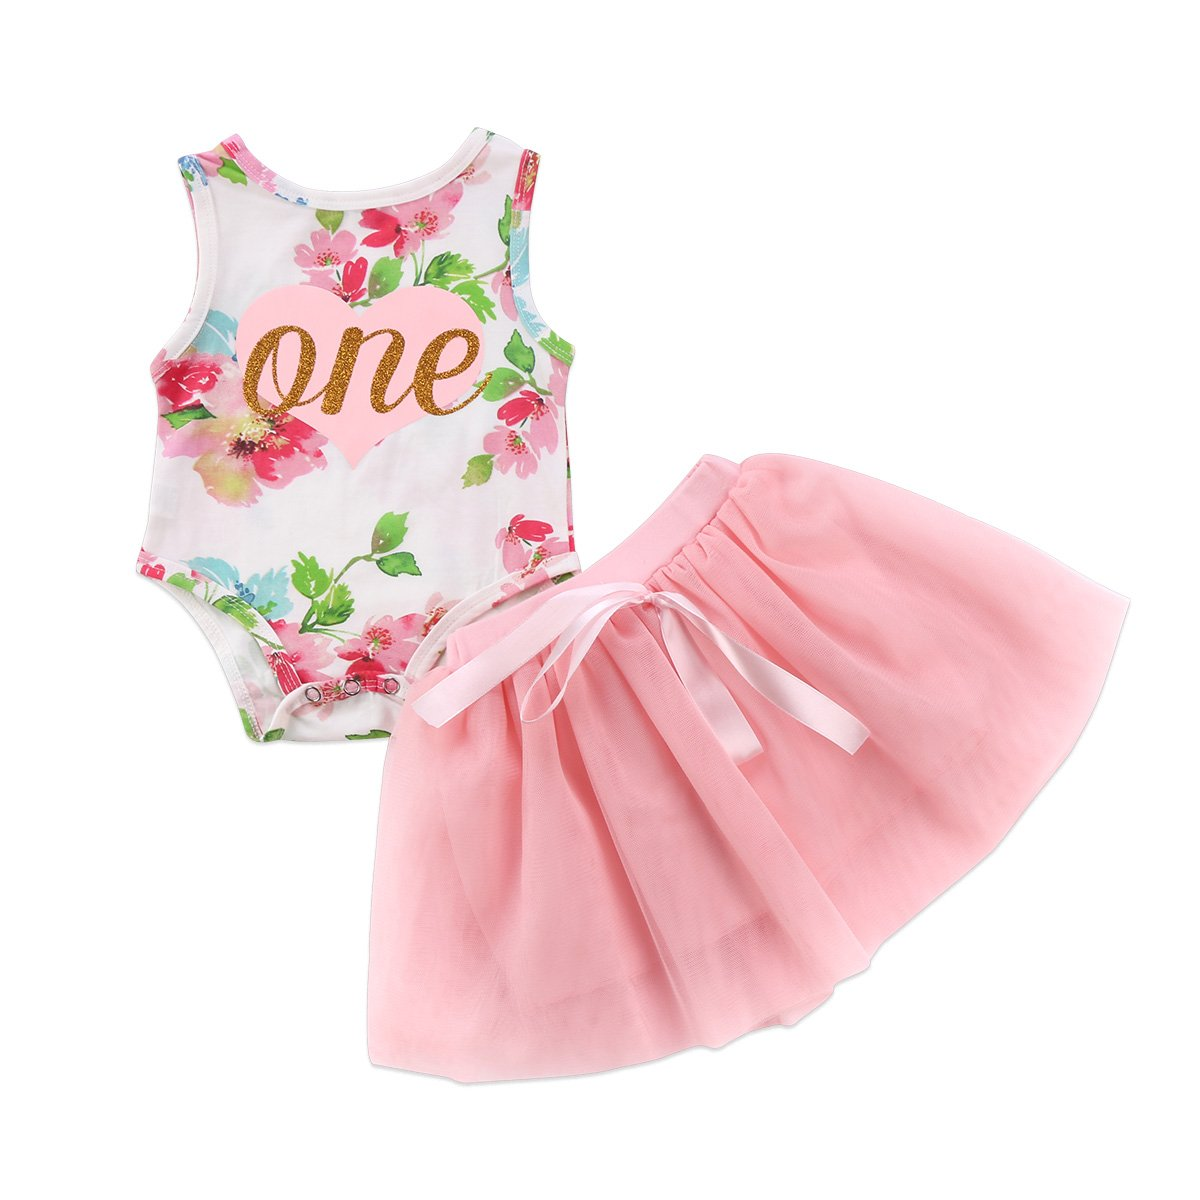 yannzi Baby Girls' 1st Birthday Tutu Dress Sleeveless Floral Romper Top Lace Skirt Clothes Easter Outfit 2Pcs